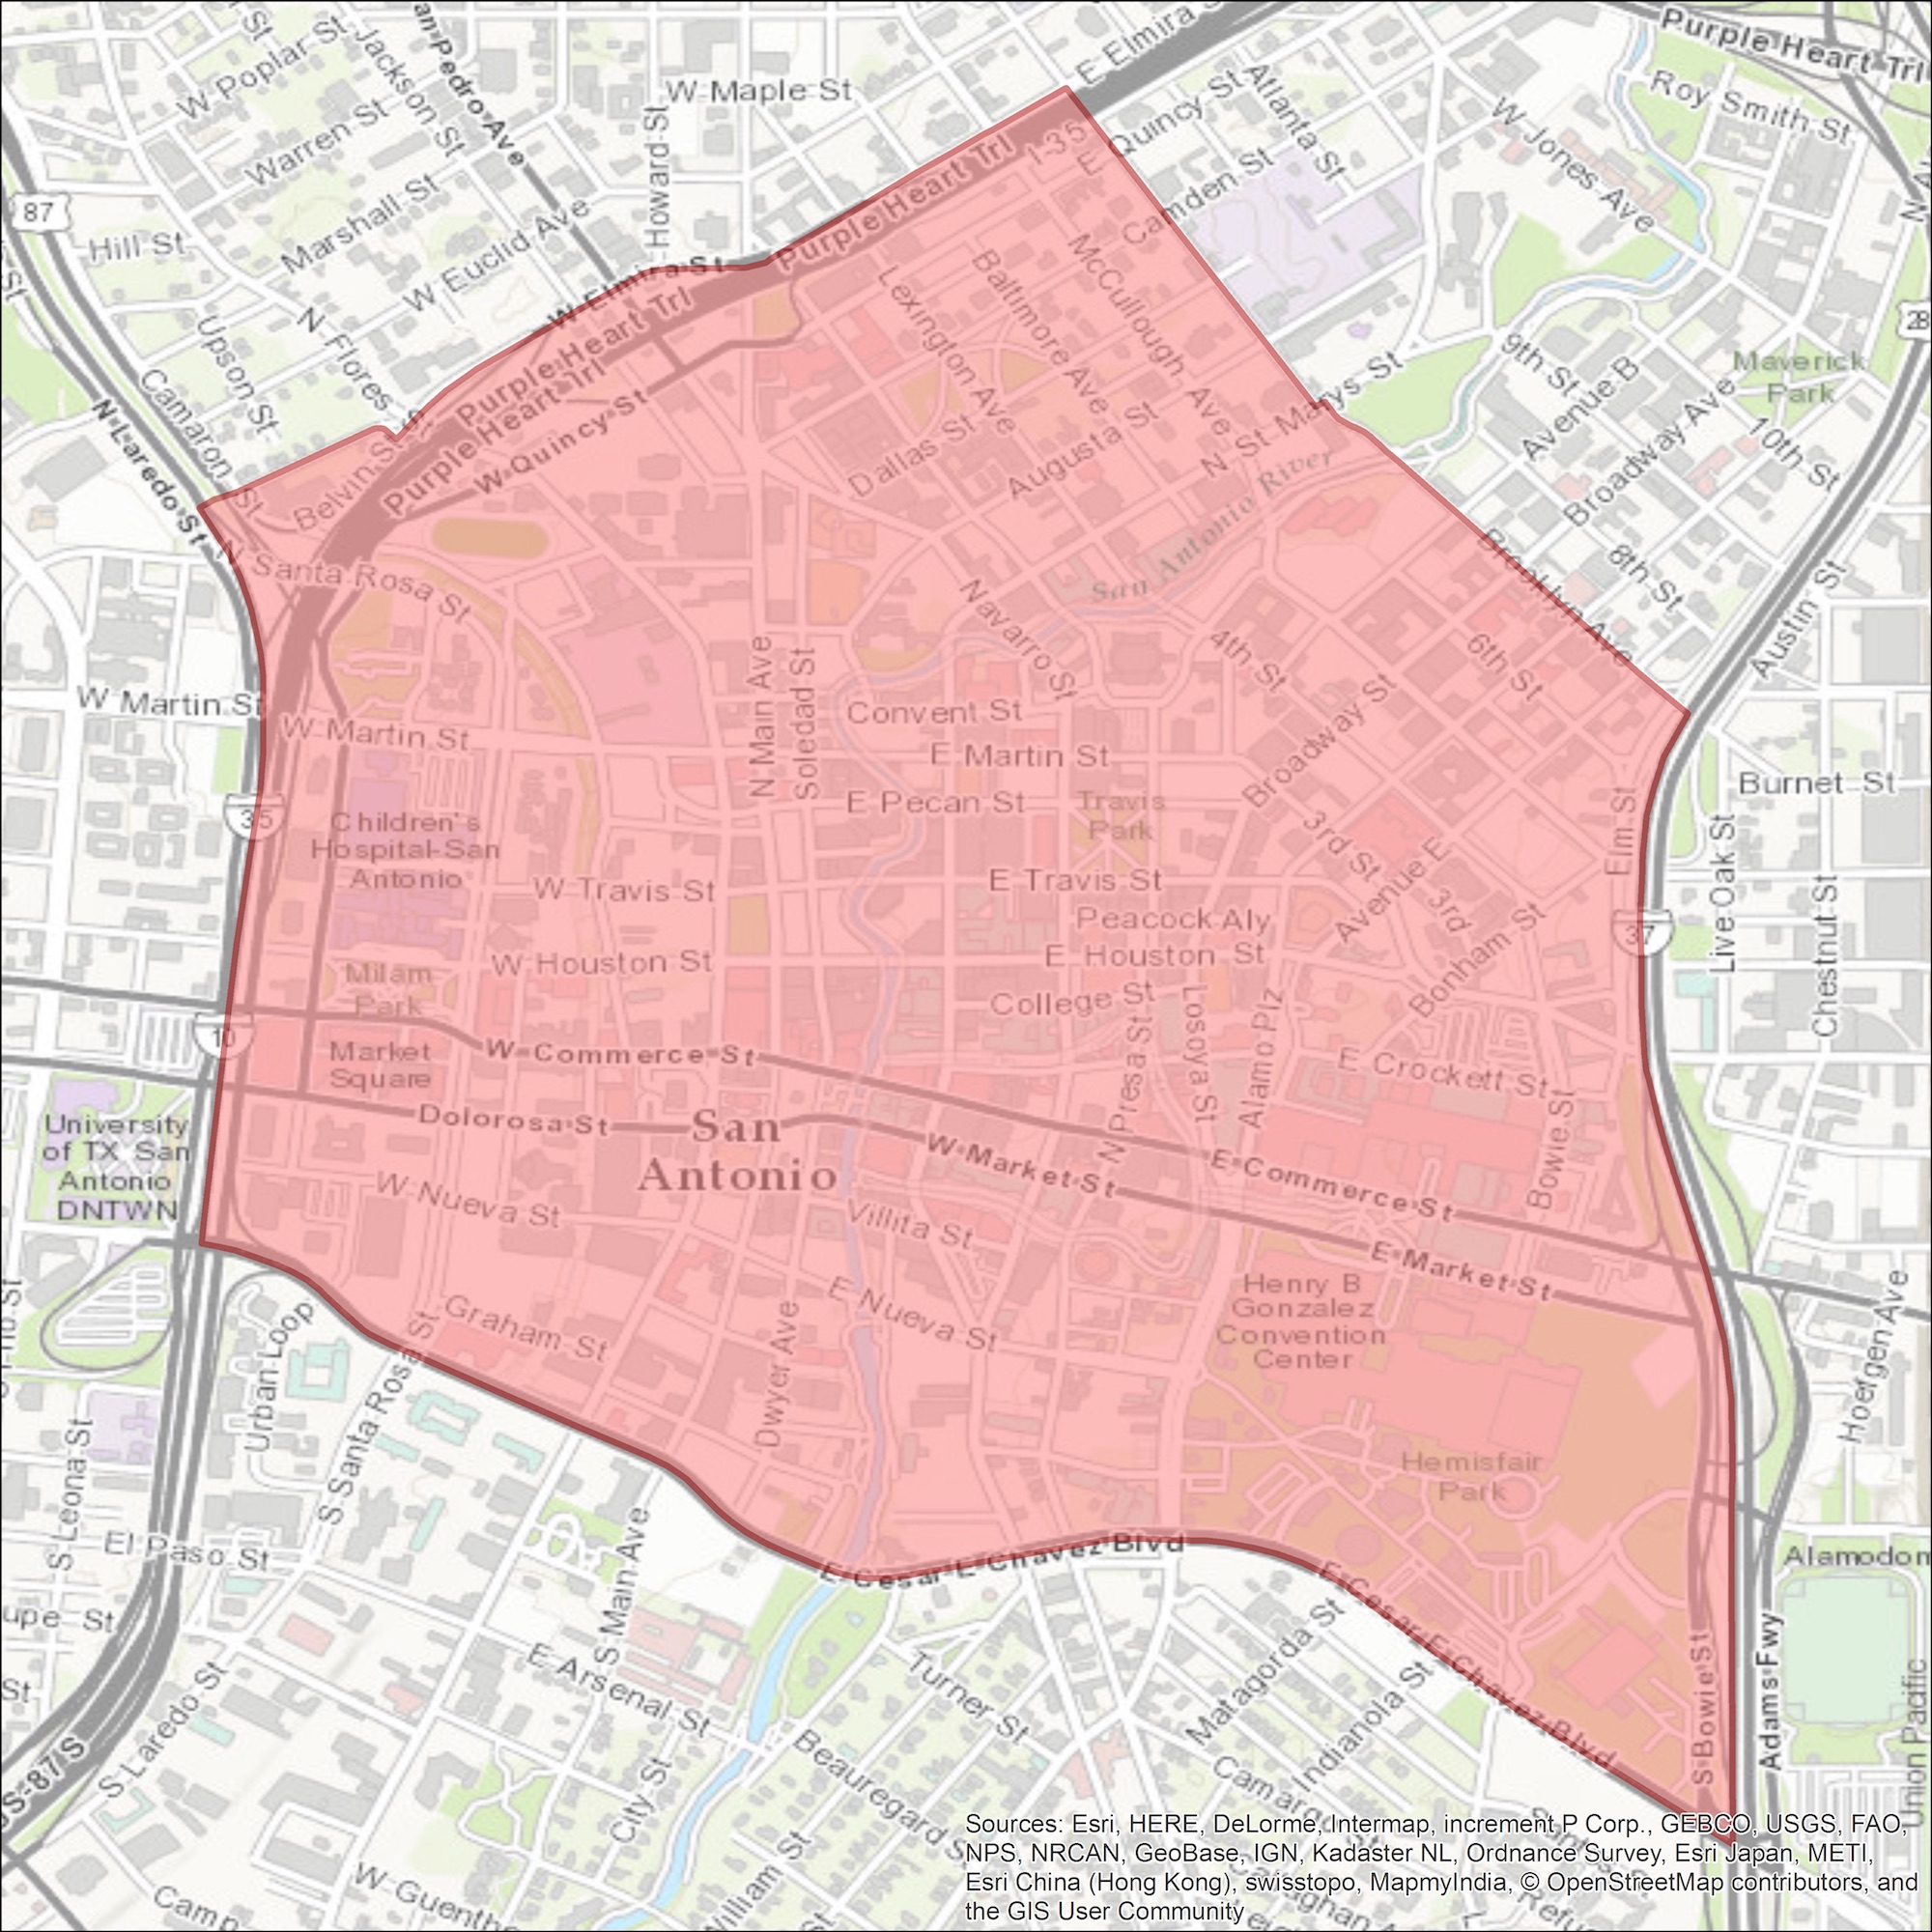 The U.S. Census boundaries for San Antonio's central business district.